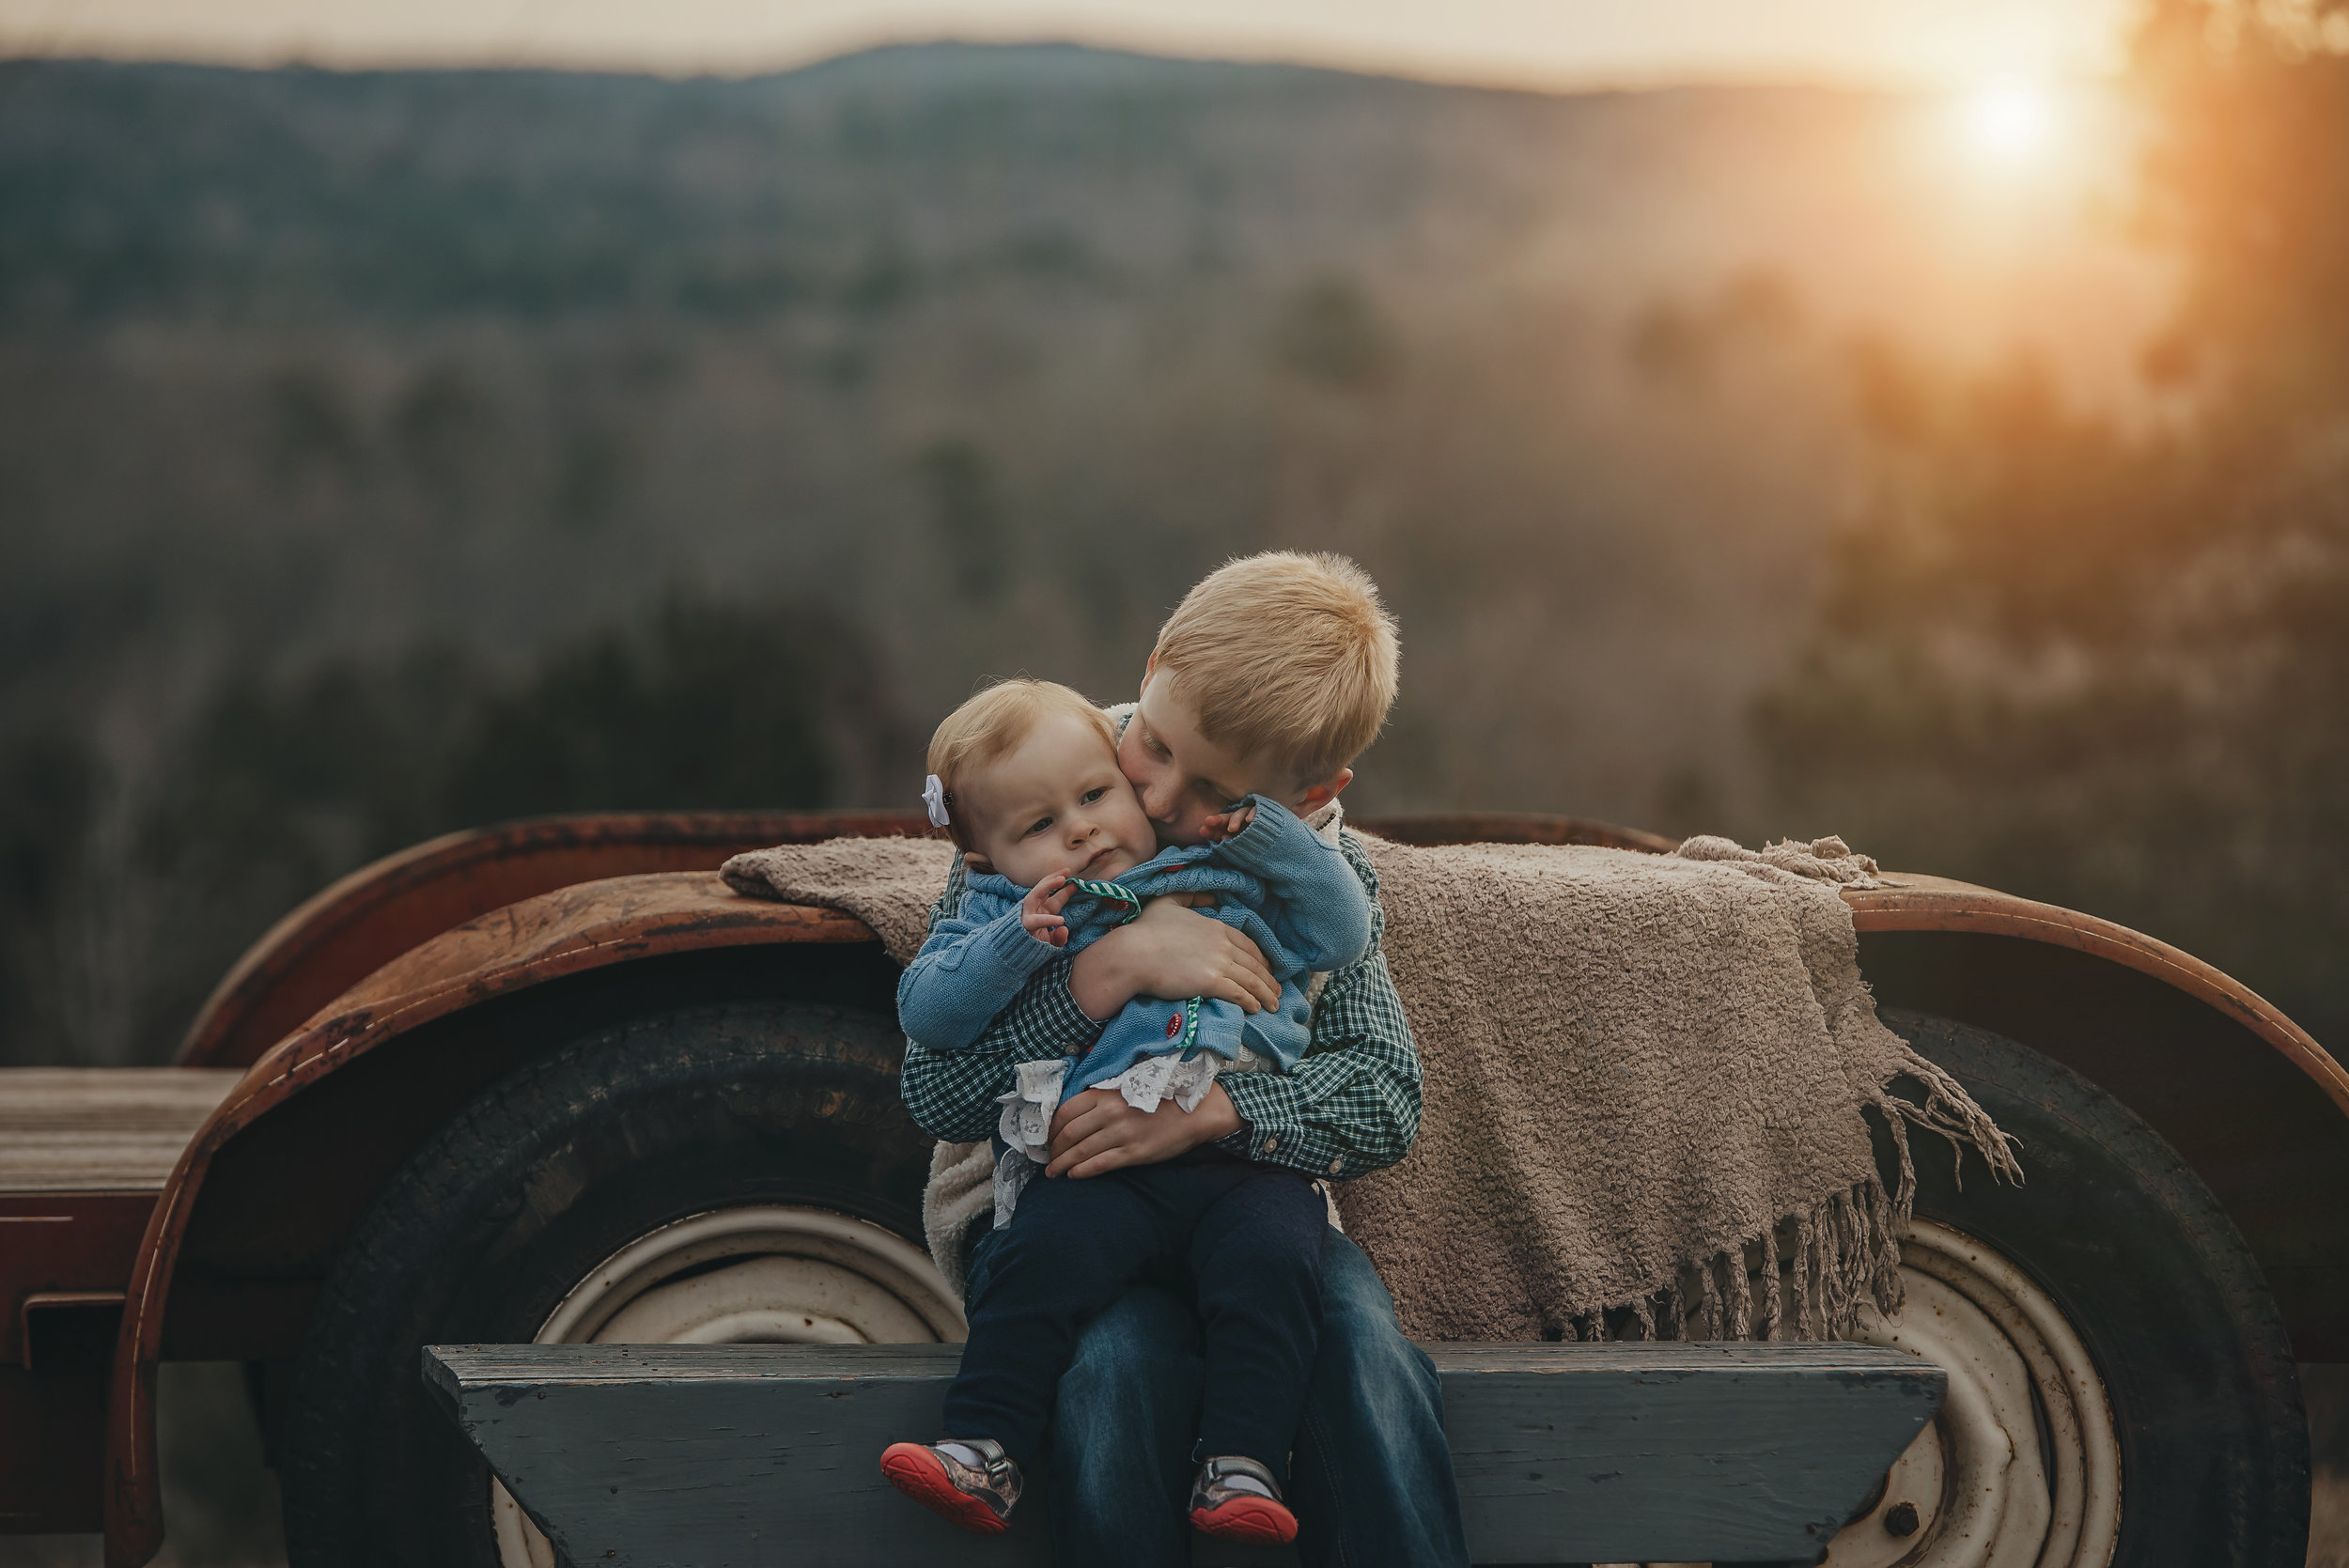 """© Beautiful Horizon Photography.  """"There's no other love like the love for a brother, and no other love like the love of a brother""""                                                                   -Terri Guillemets"""